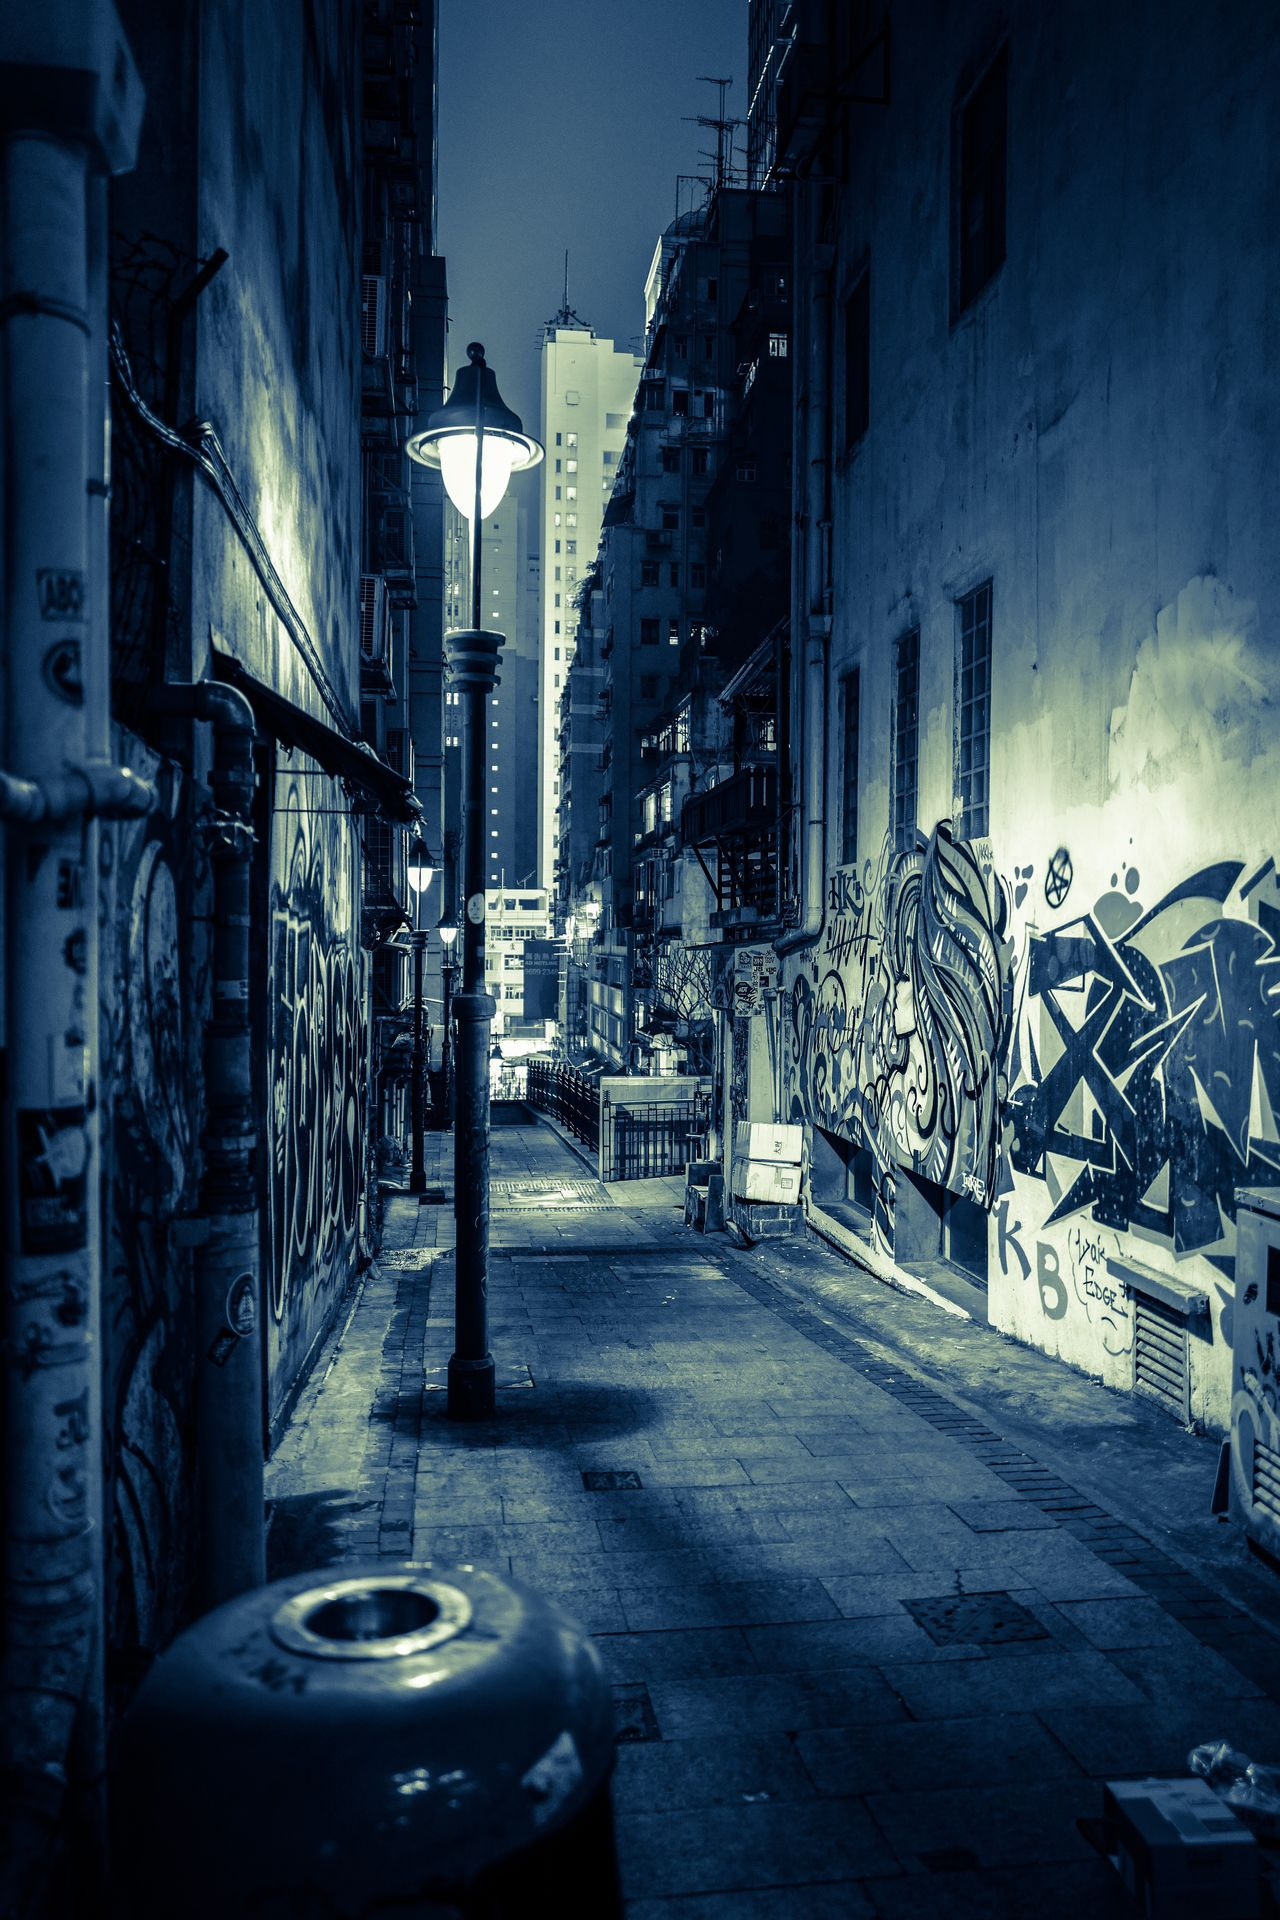 alley at central EyeEmNewHere Nightshooters City Life Cityscape Reflections Life In Motion Hello World Hklocals Shadows & Lights Taking Pictures Moments Of Life EyeEm Gallery From My Point Of View Walking Around Travelling Photography Discoverhongkong EyeEm Masterclass Night Photography Lifestyles Hkiger Leicashooters Madeinwetzlar Leicaq Leicacamera Streetphotography